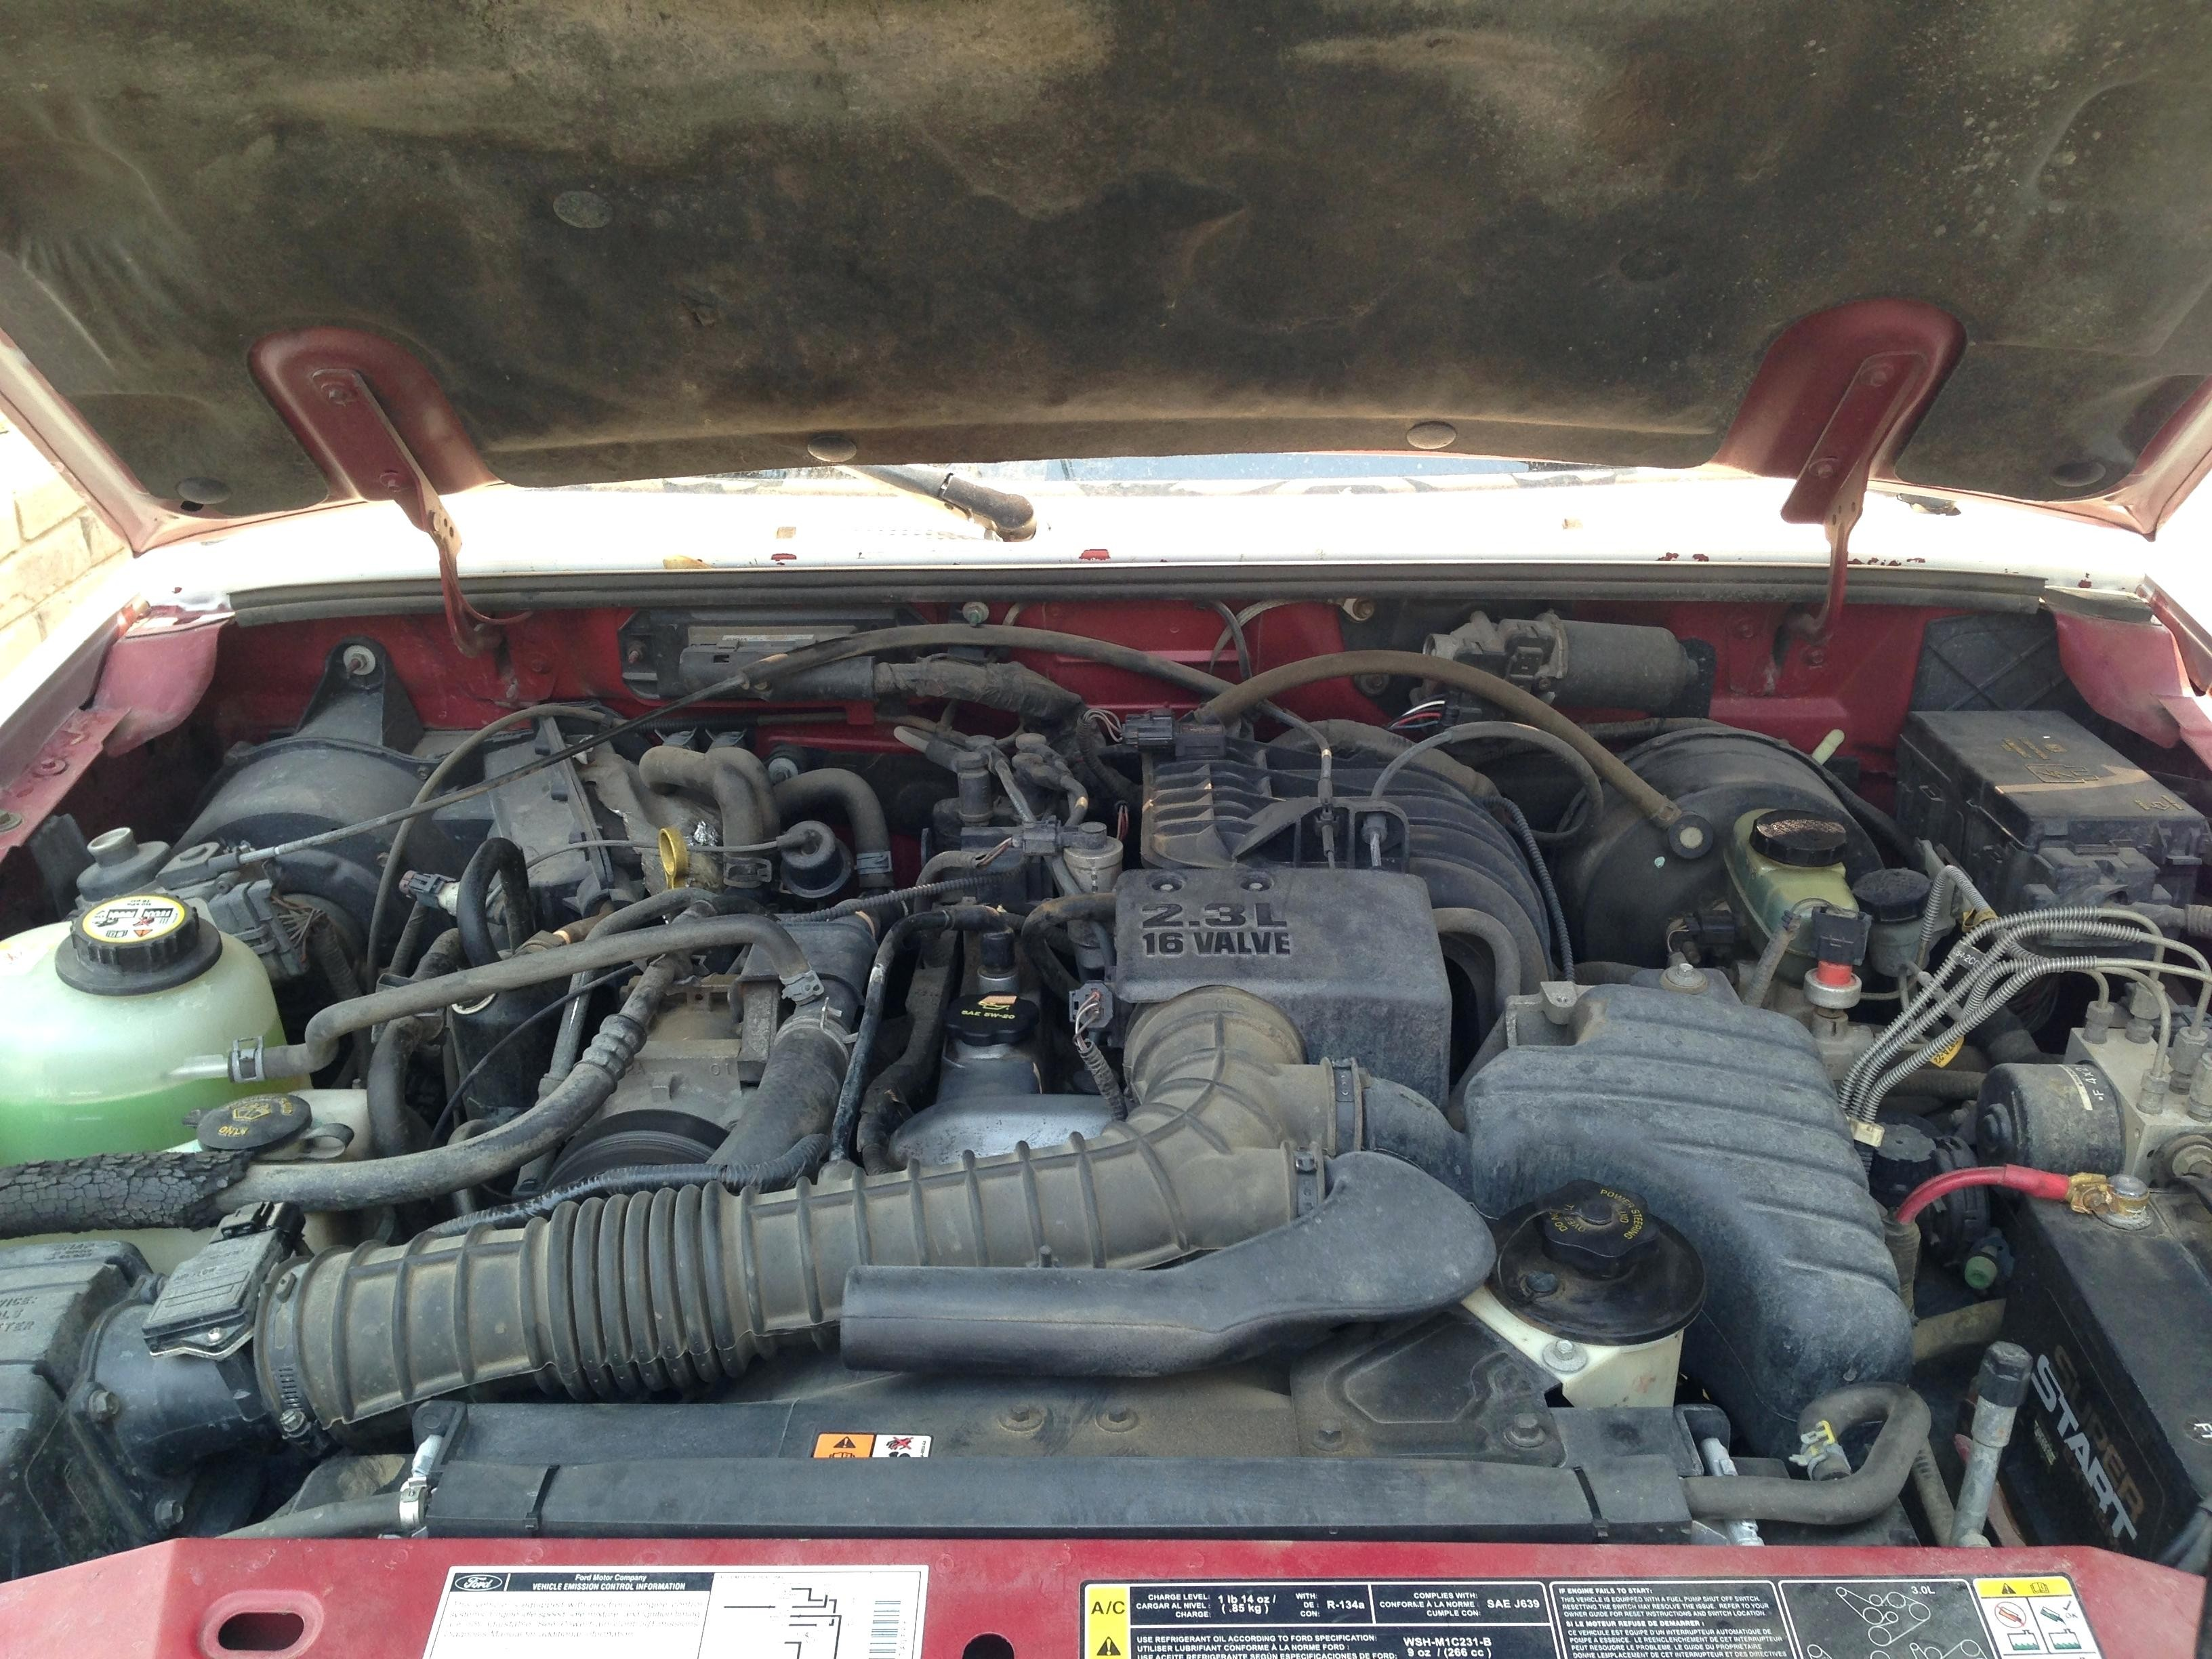 2000 Chevy Blazer Engine Diagram Wiring Diagram for Trailer 3 02 Auto and Specification 03 Of 2000 Chevy Blazer Engine Diagram